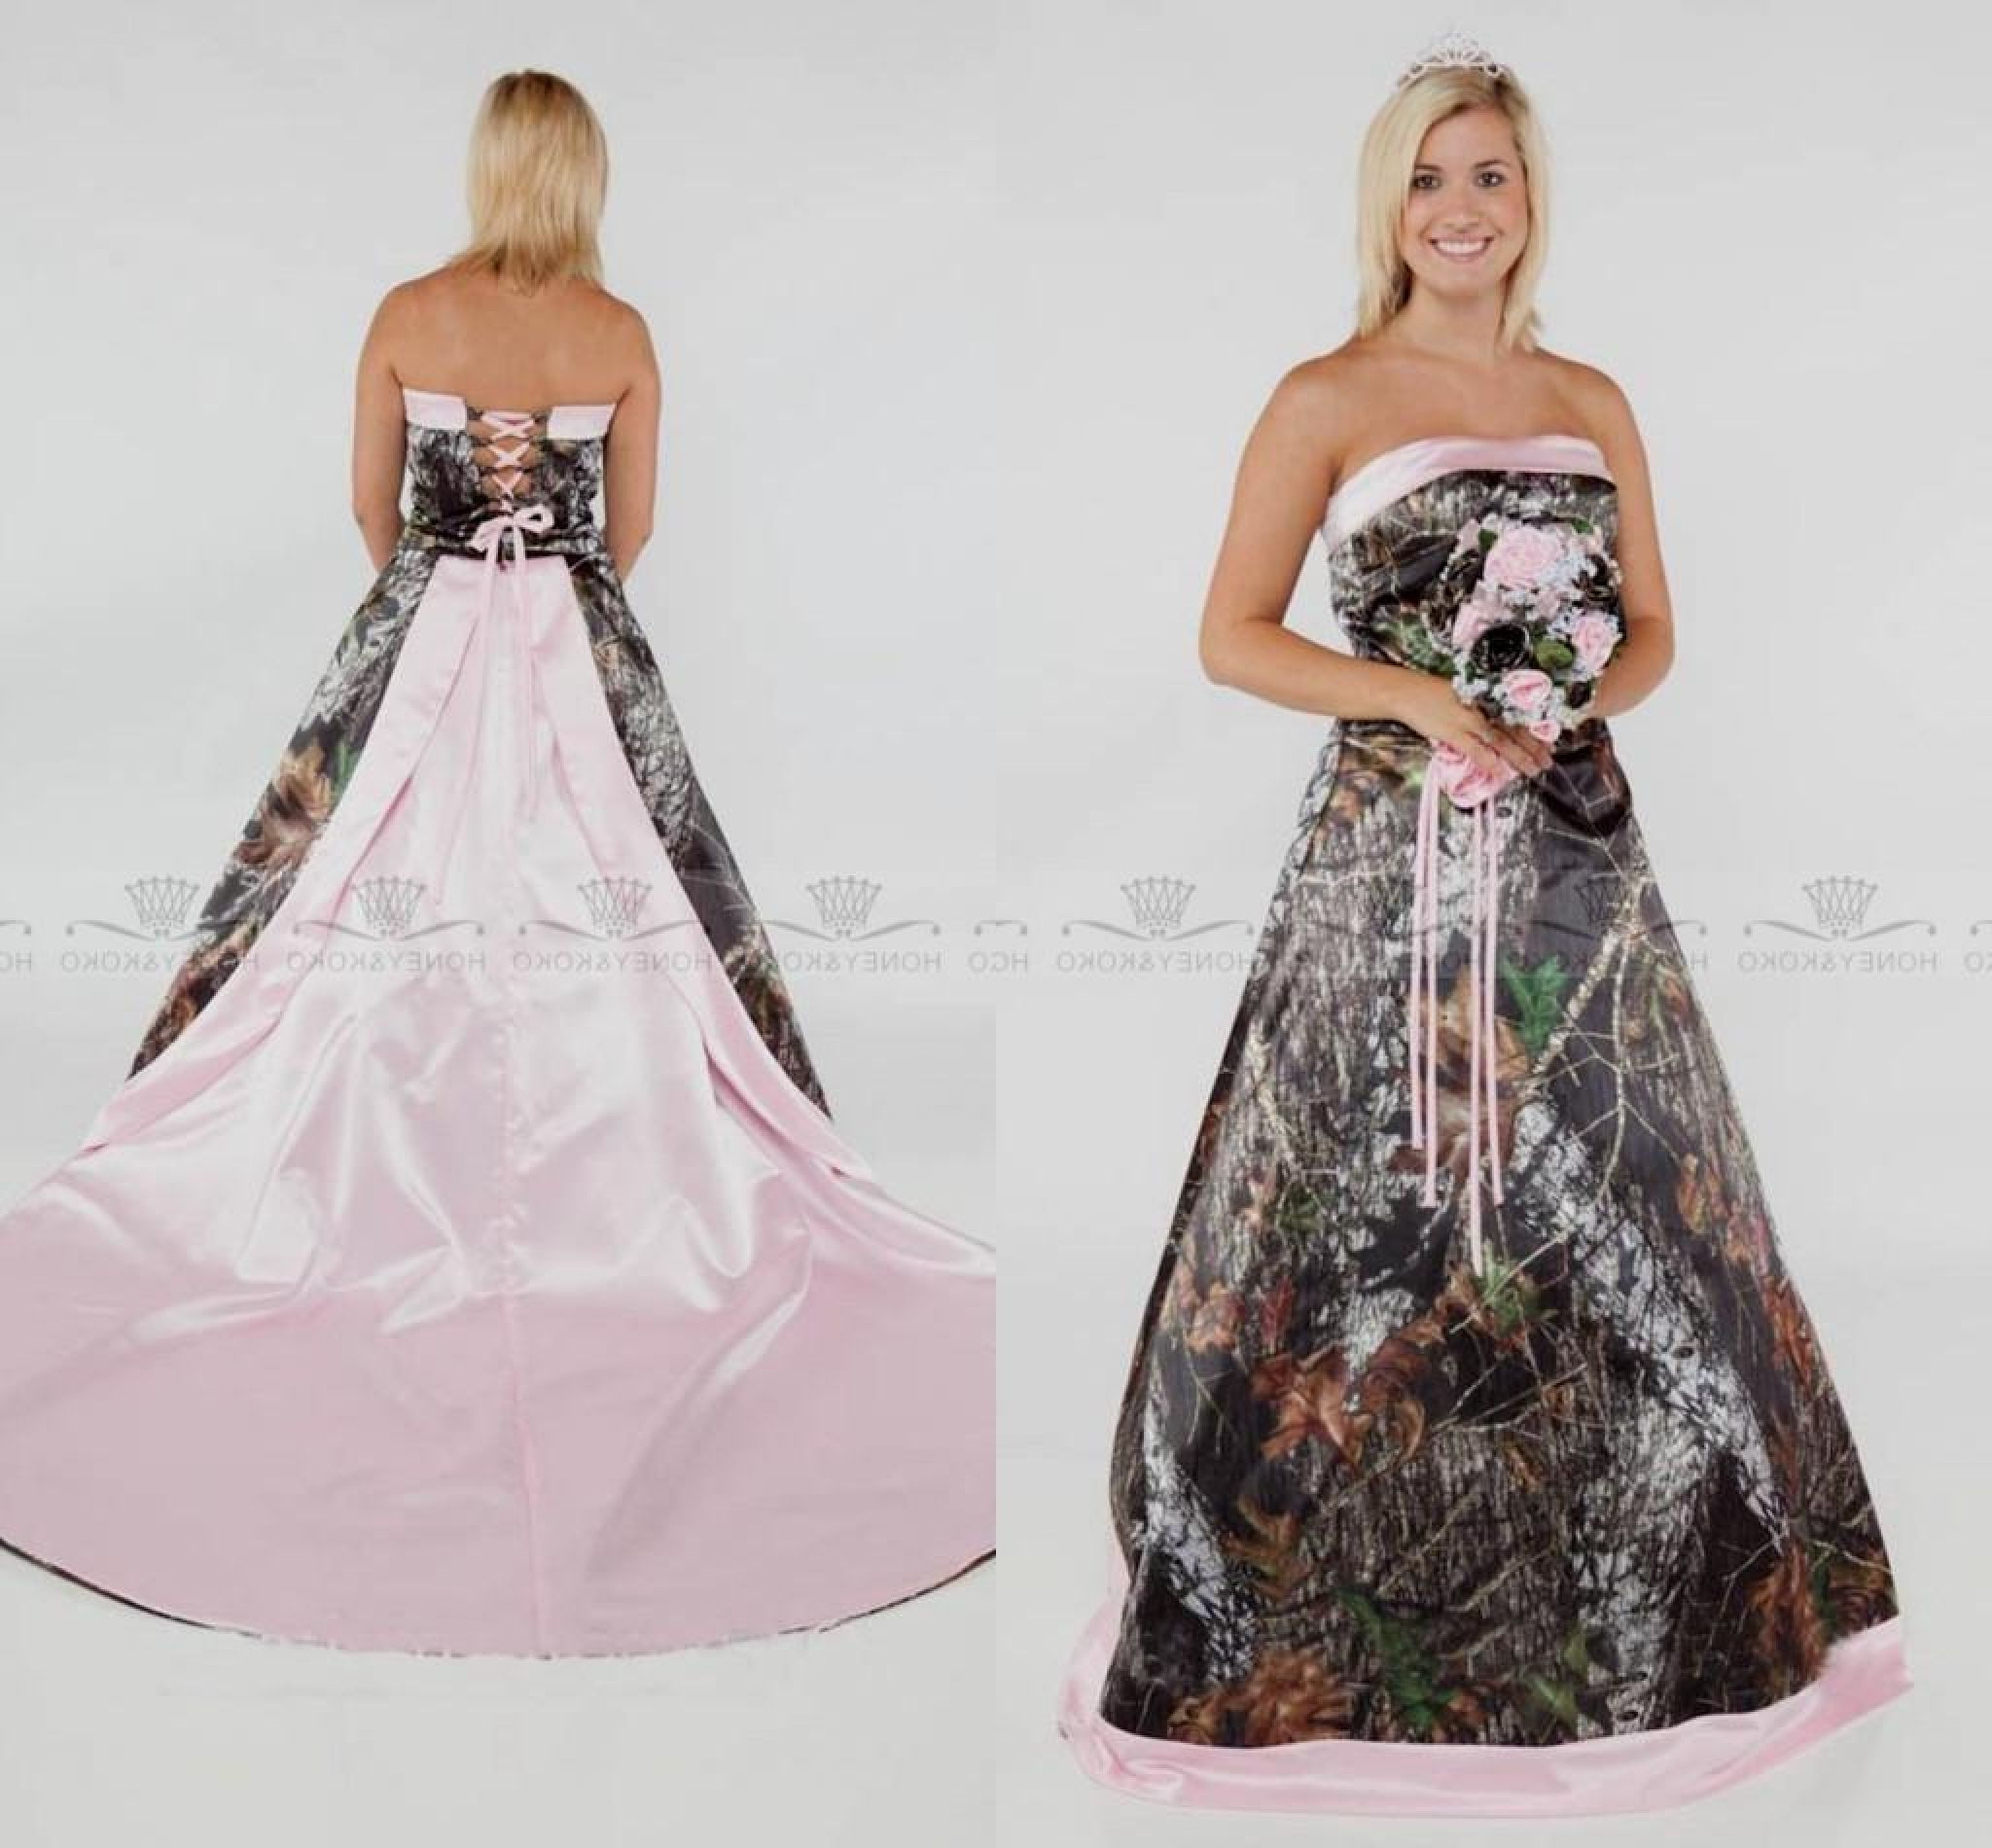 Wedding Camo dresses for plus sizes forecast to wear in autumn in 2019